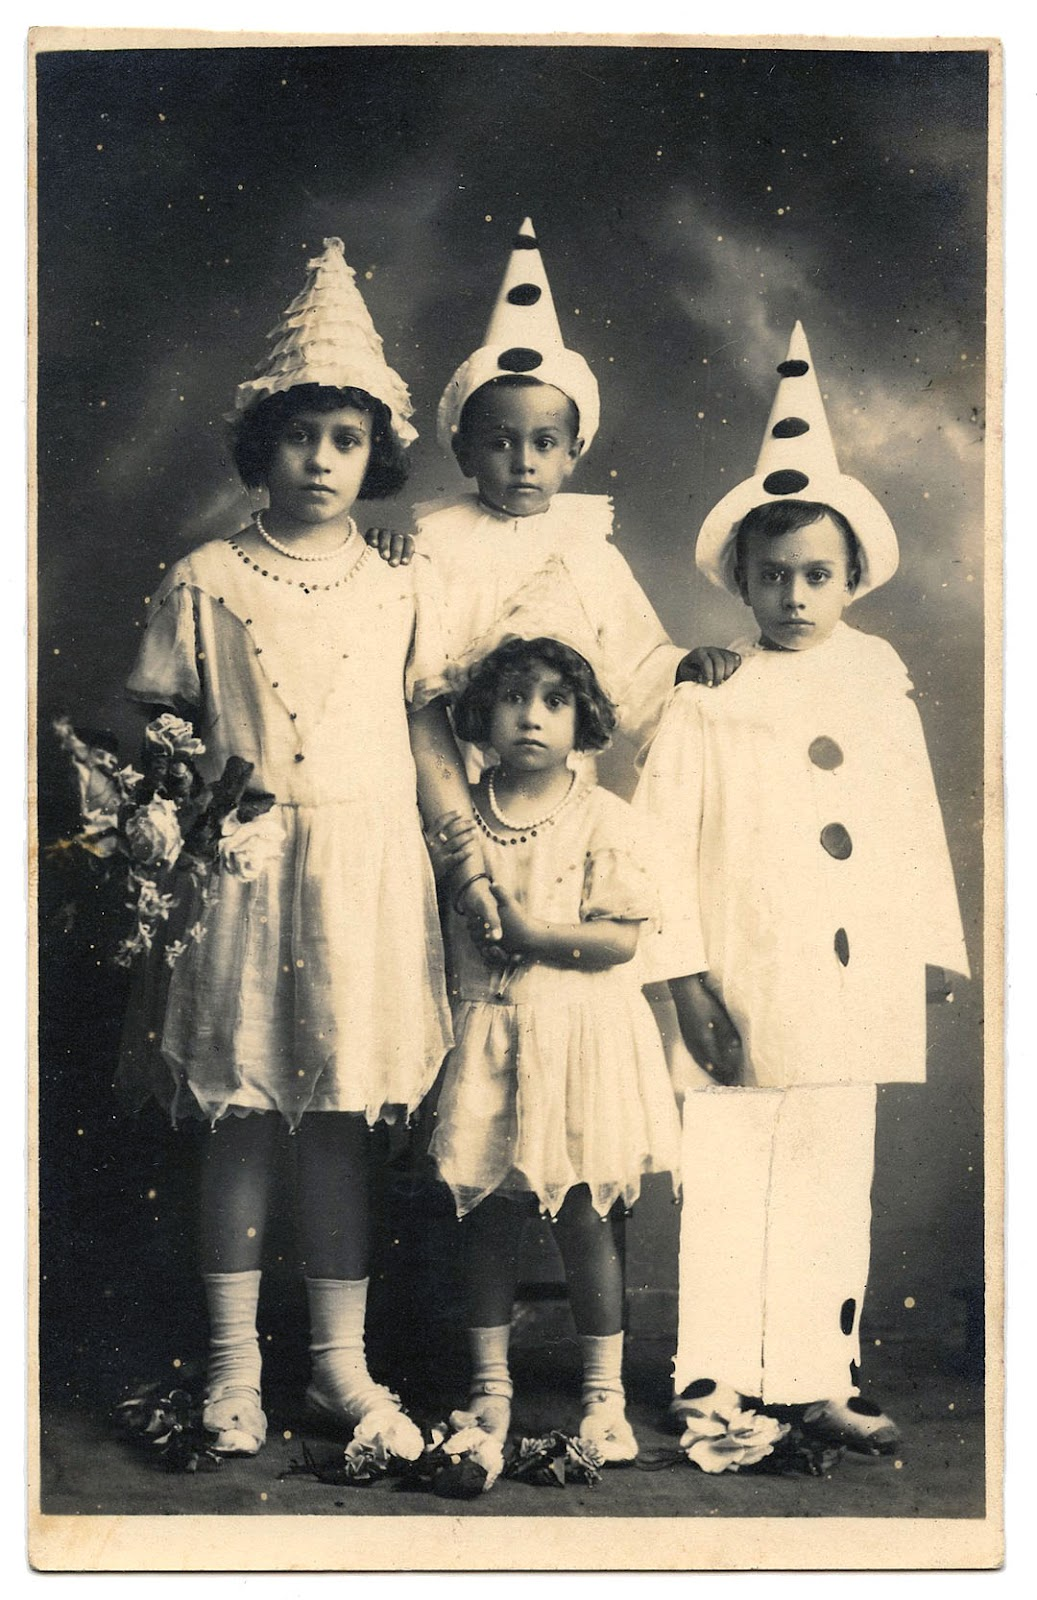 8 Year Old Halloween Costumes